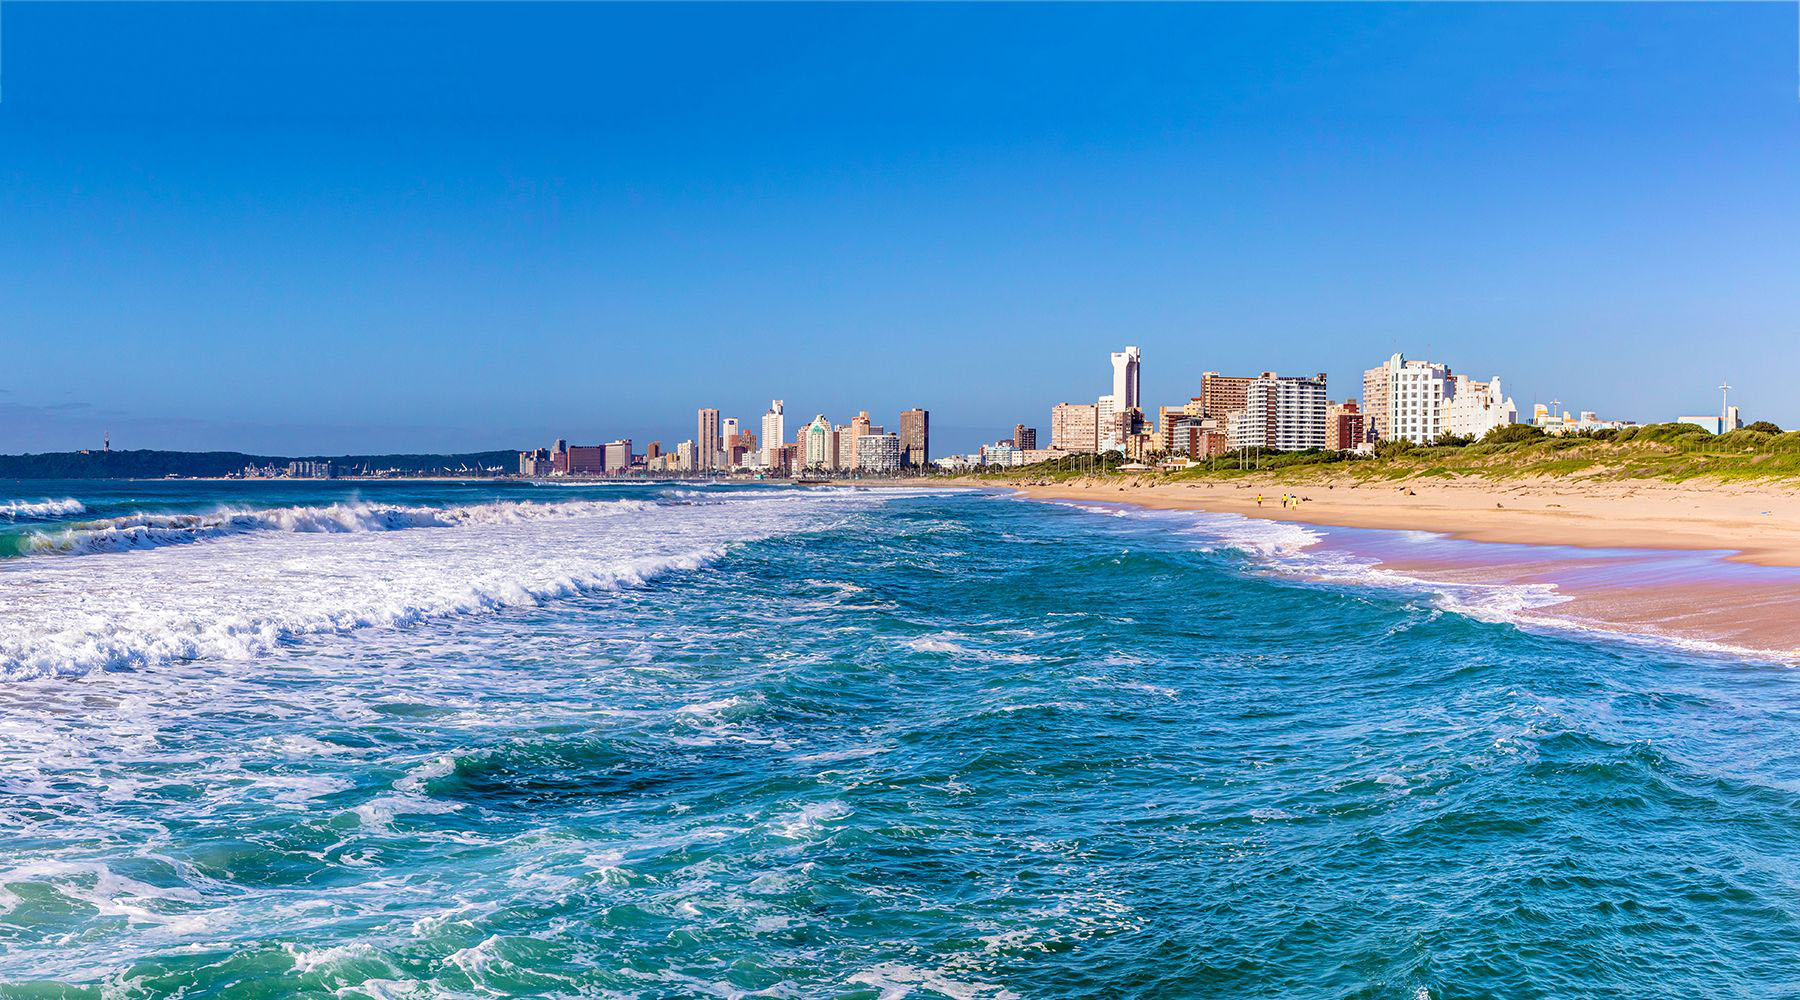 blue waves rolling onto a beach in durban south africa